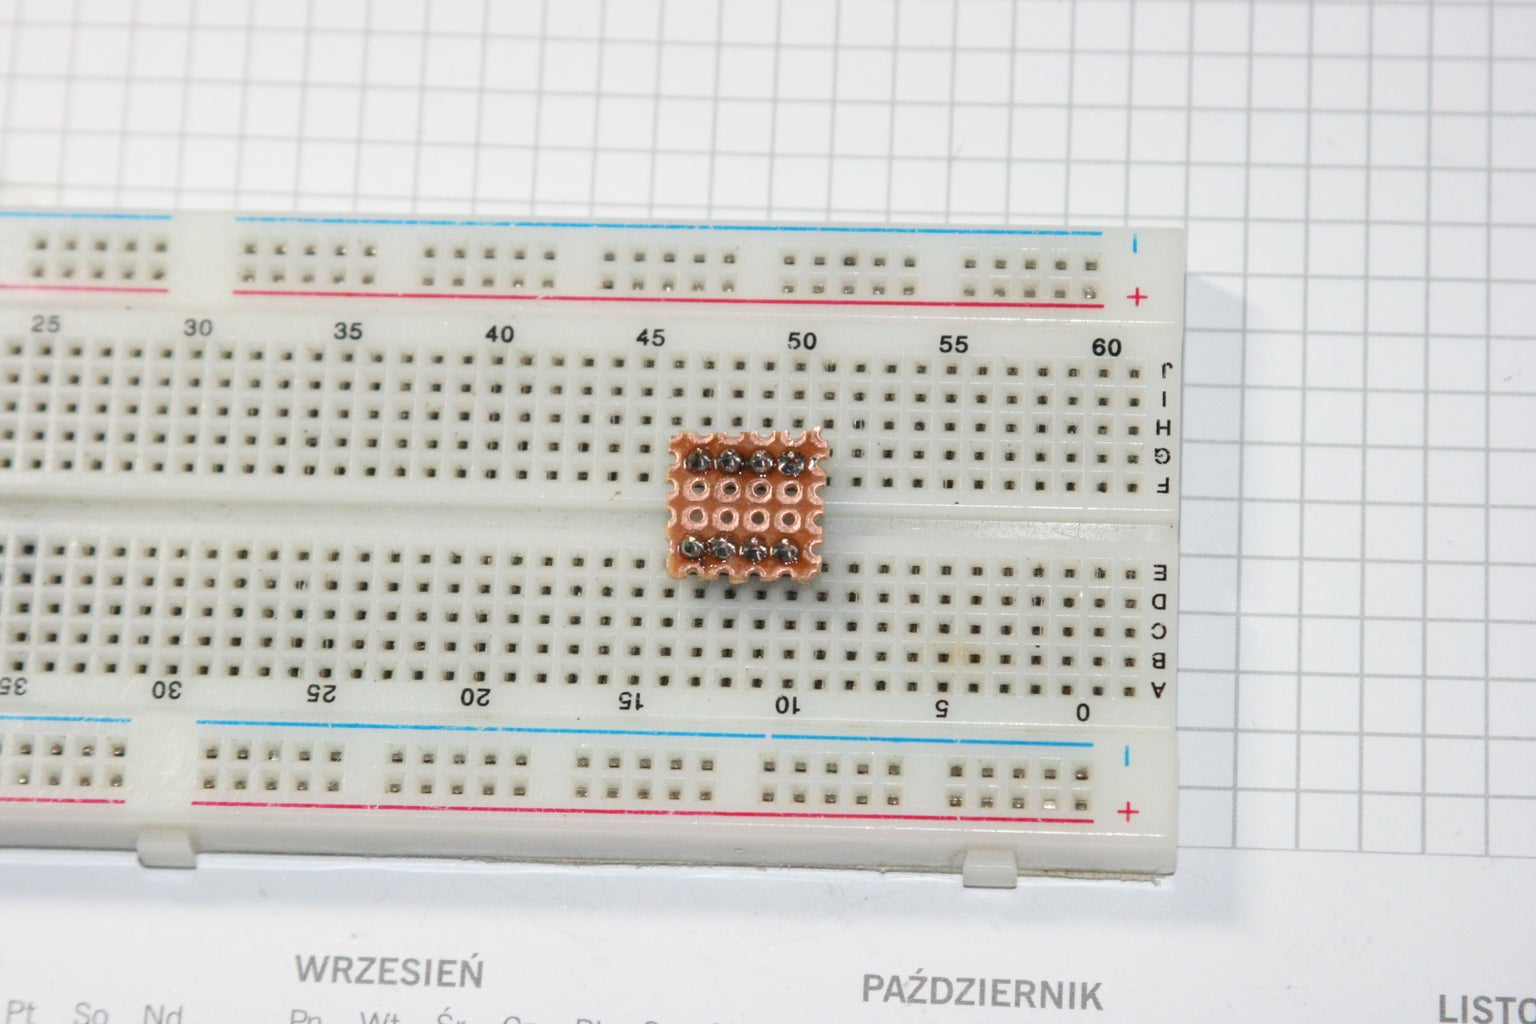 Put Prototyping Board on GOLDPINs and Solder It